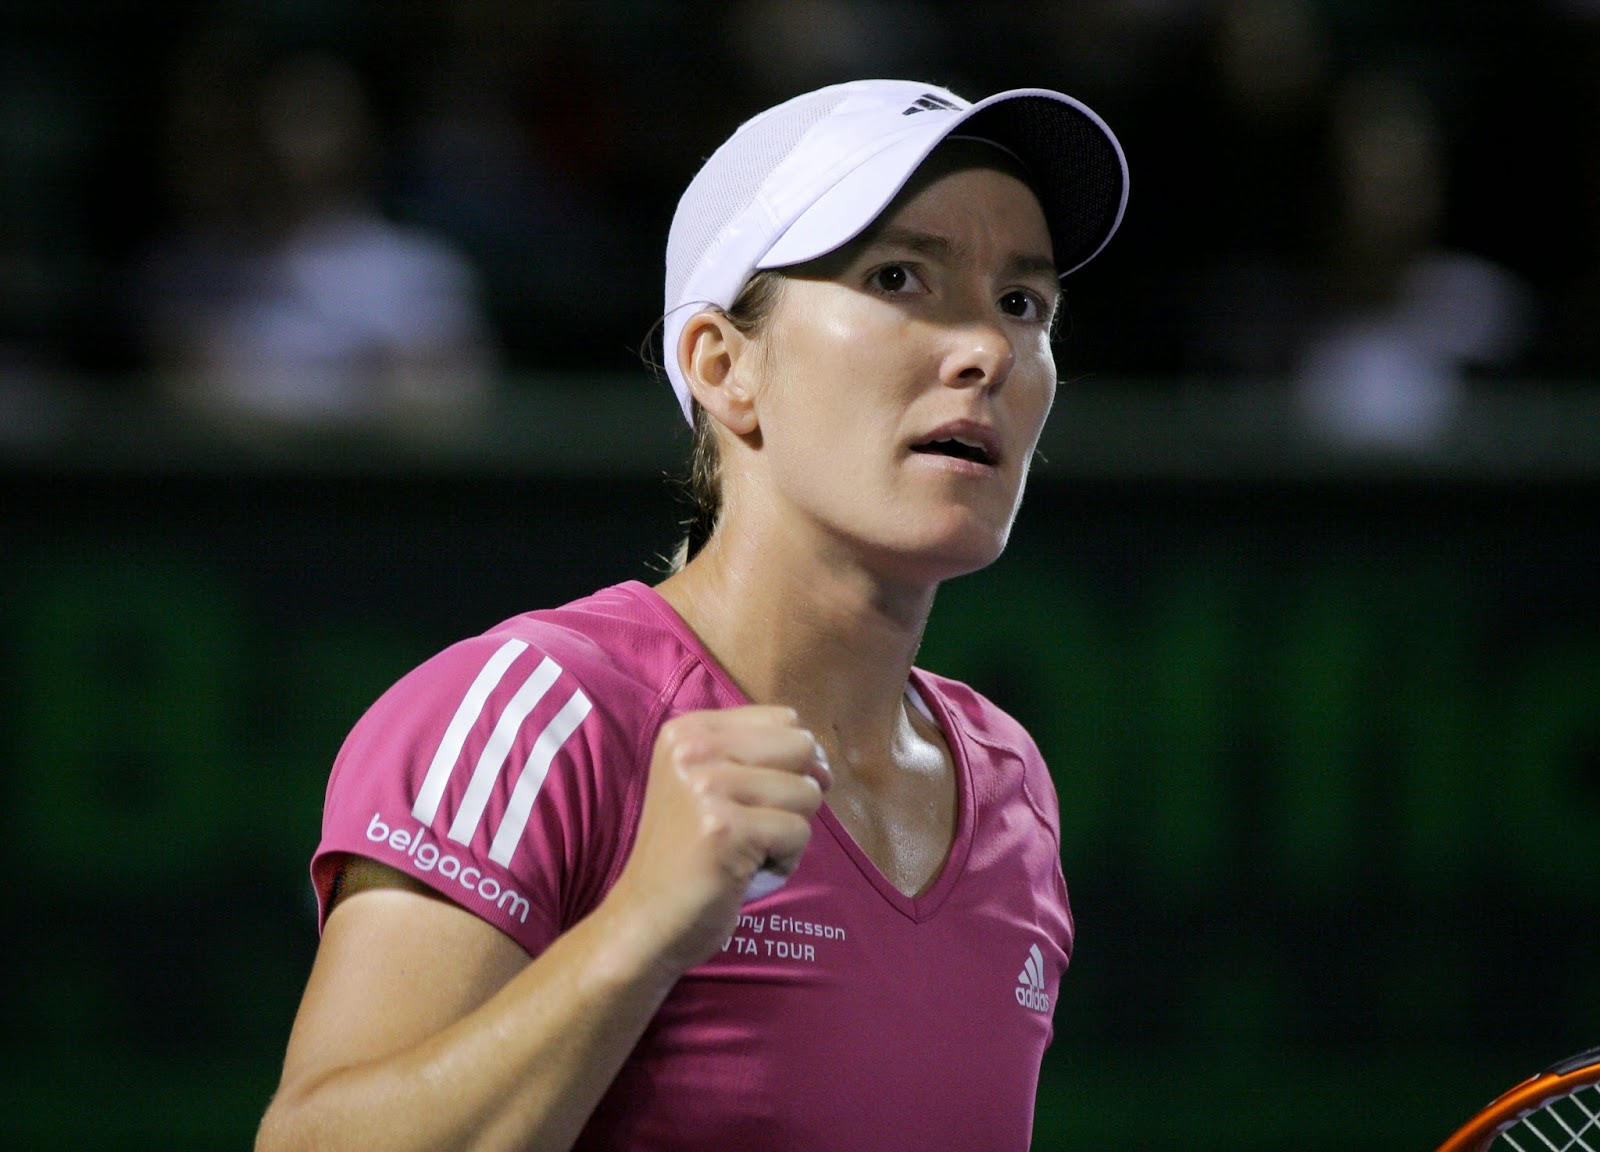 Justine Henin Profile And Fresh Hd Wallpapers 2014